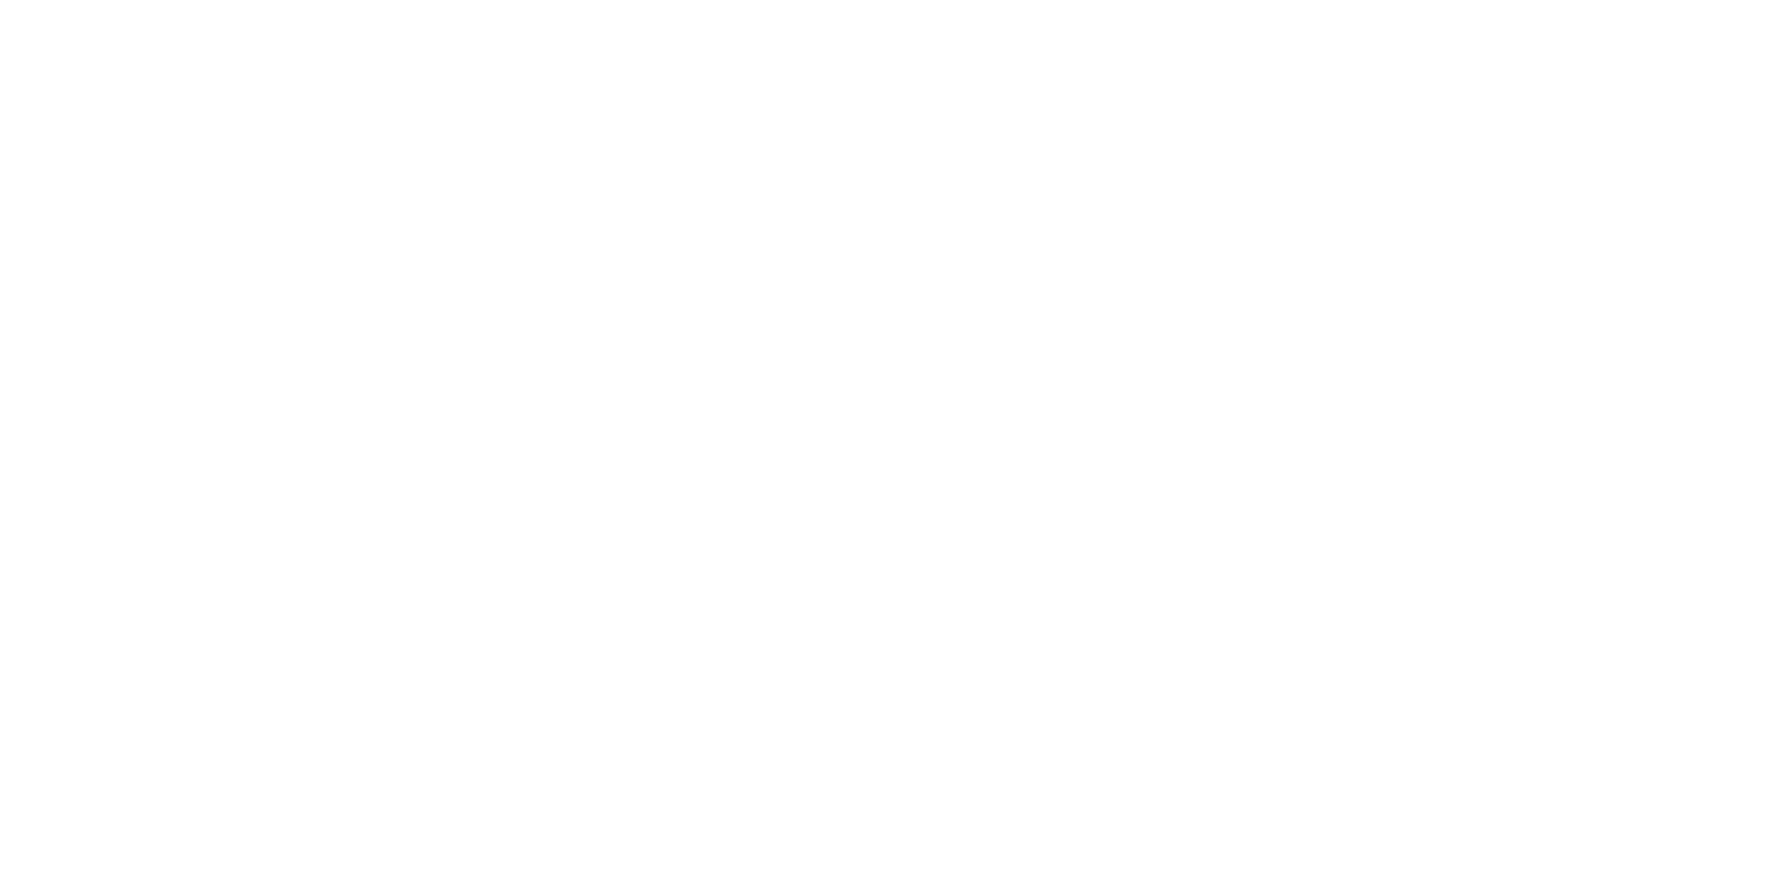 Fondazione Cariplo